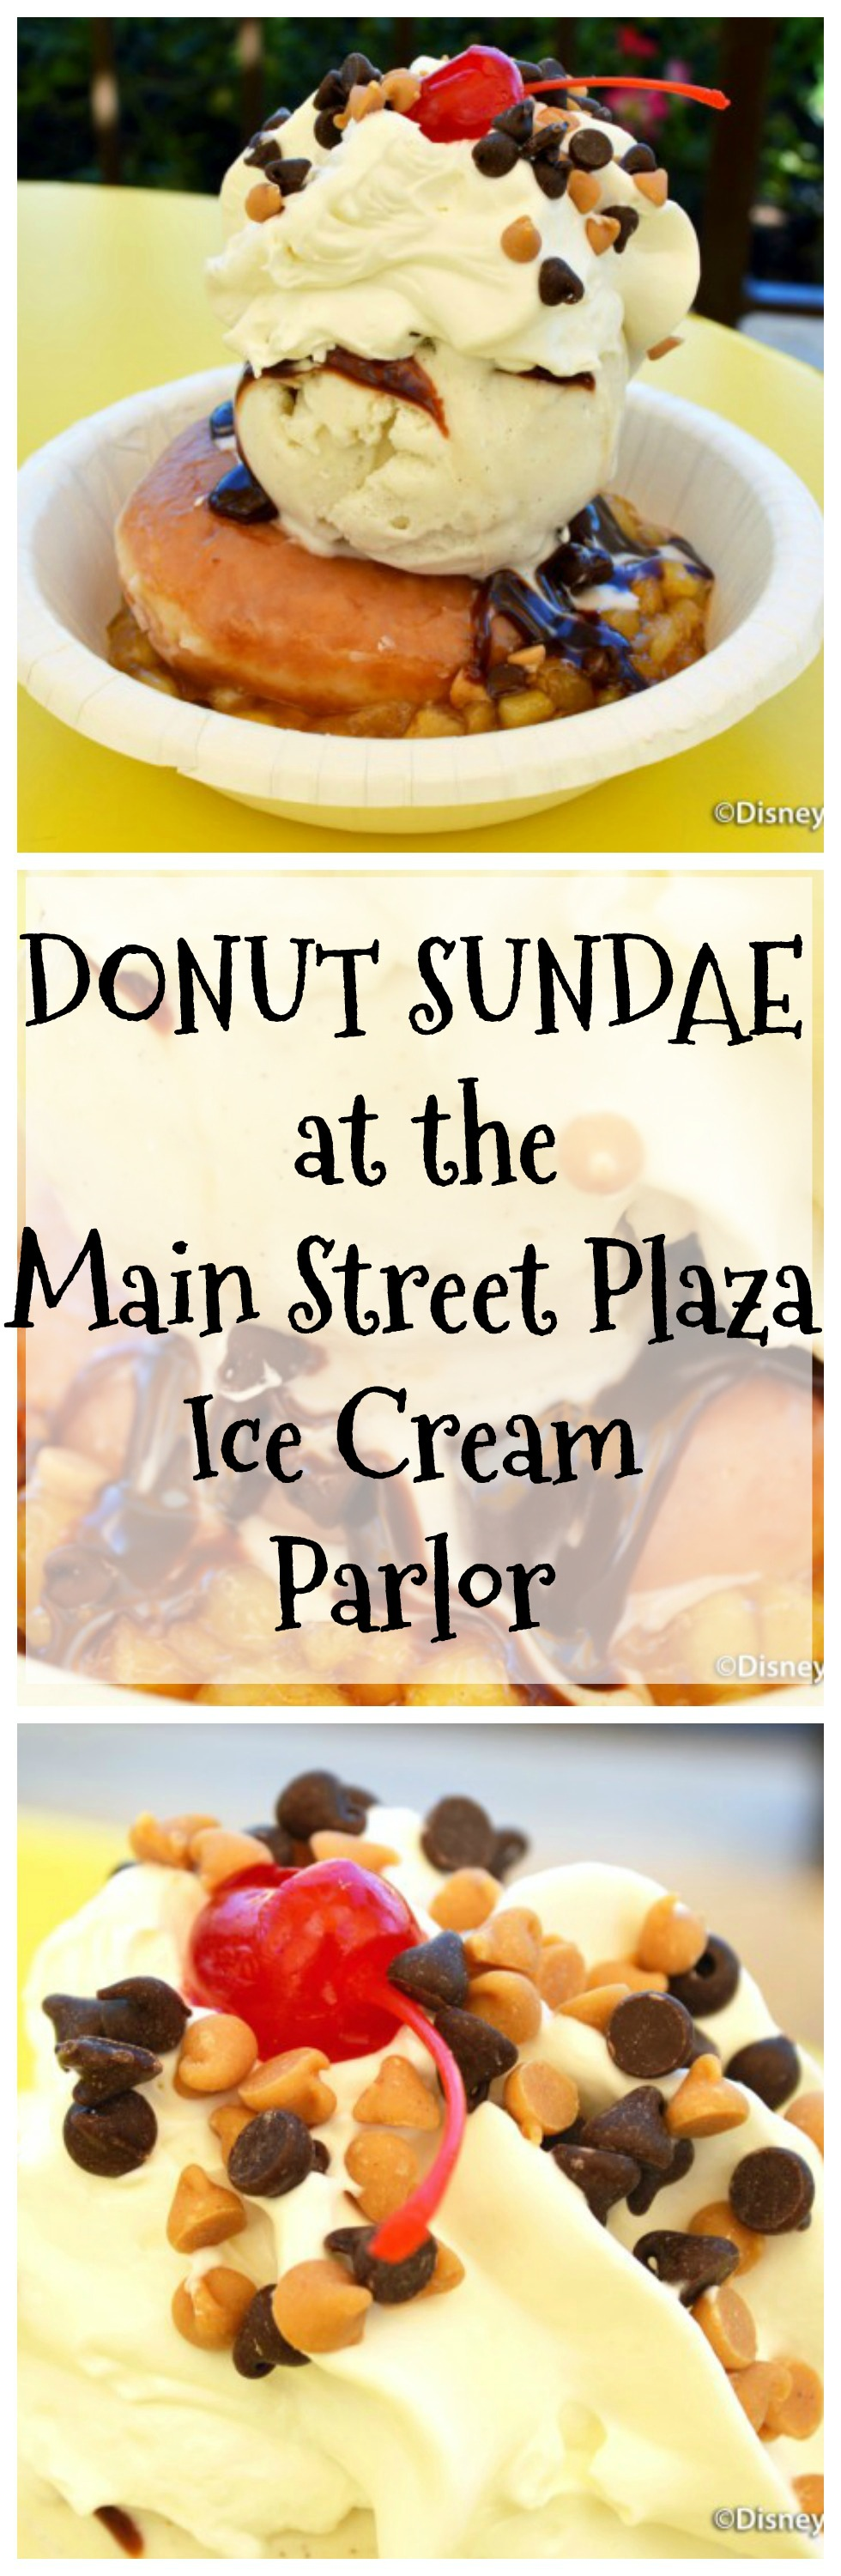 Read our review of the DONUT SUNDAE (!!!) at the Main Street Plaza Ice Cream Parlor!